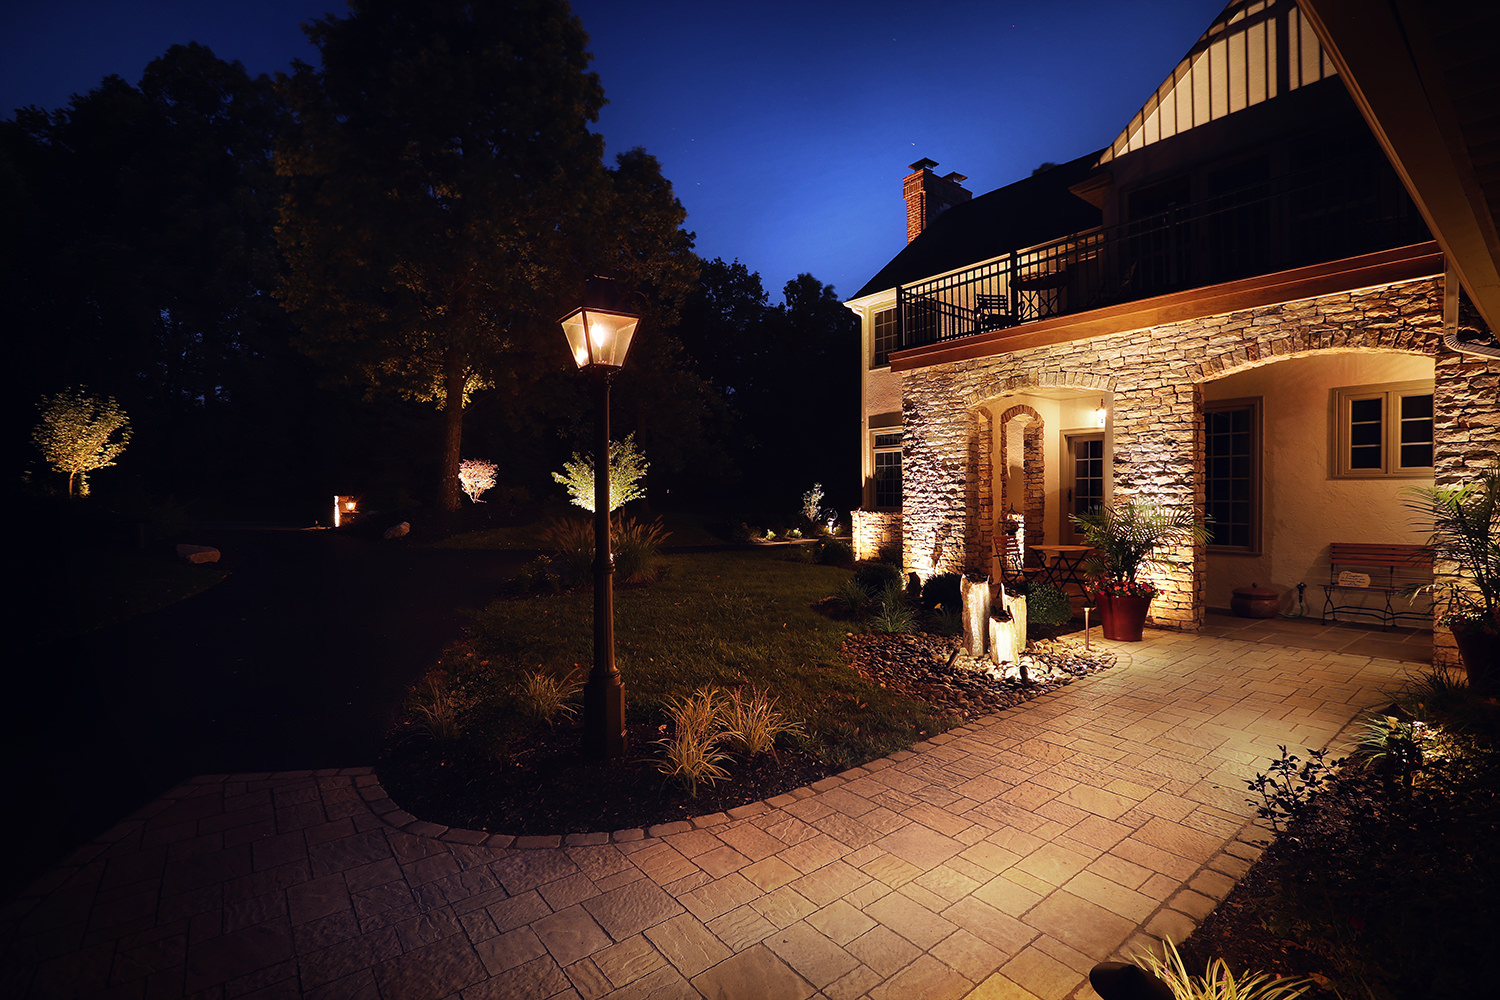 Greeted by a handcrafted gas lantern at the front of the walkway is our first glimpse into the detailed attention given to this landscape design.